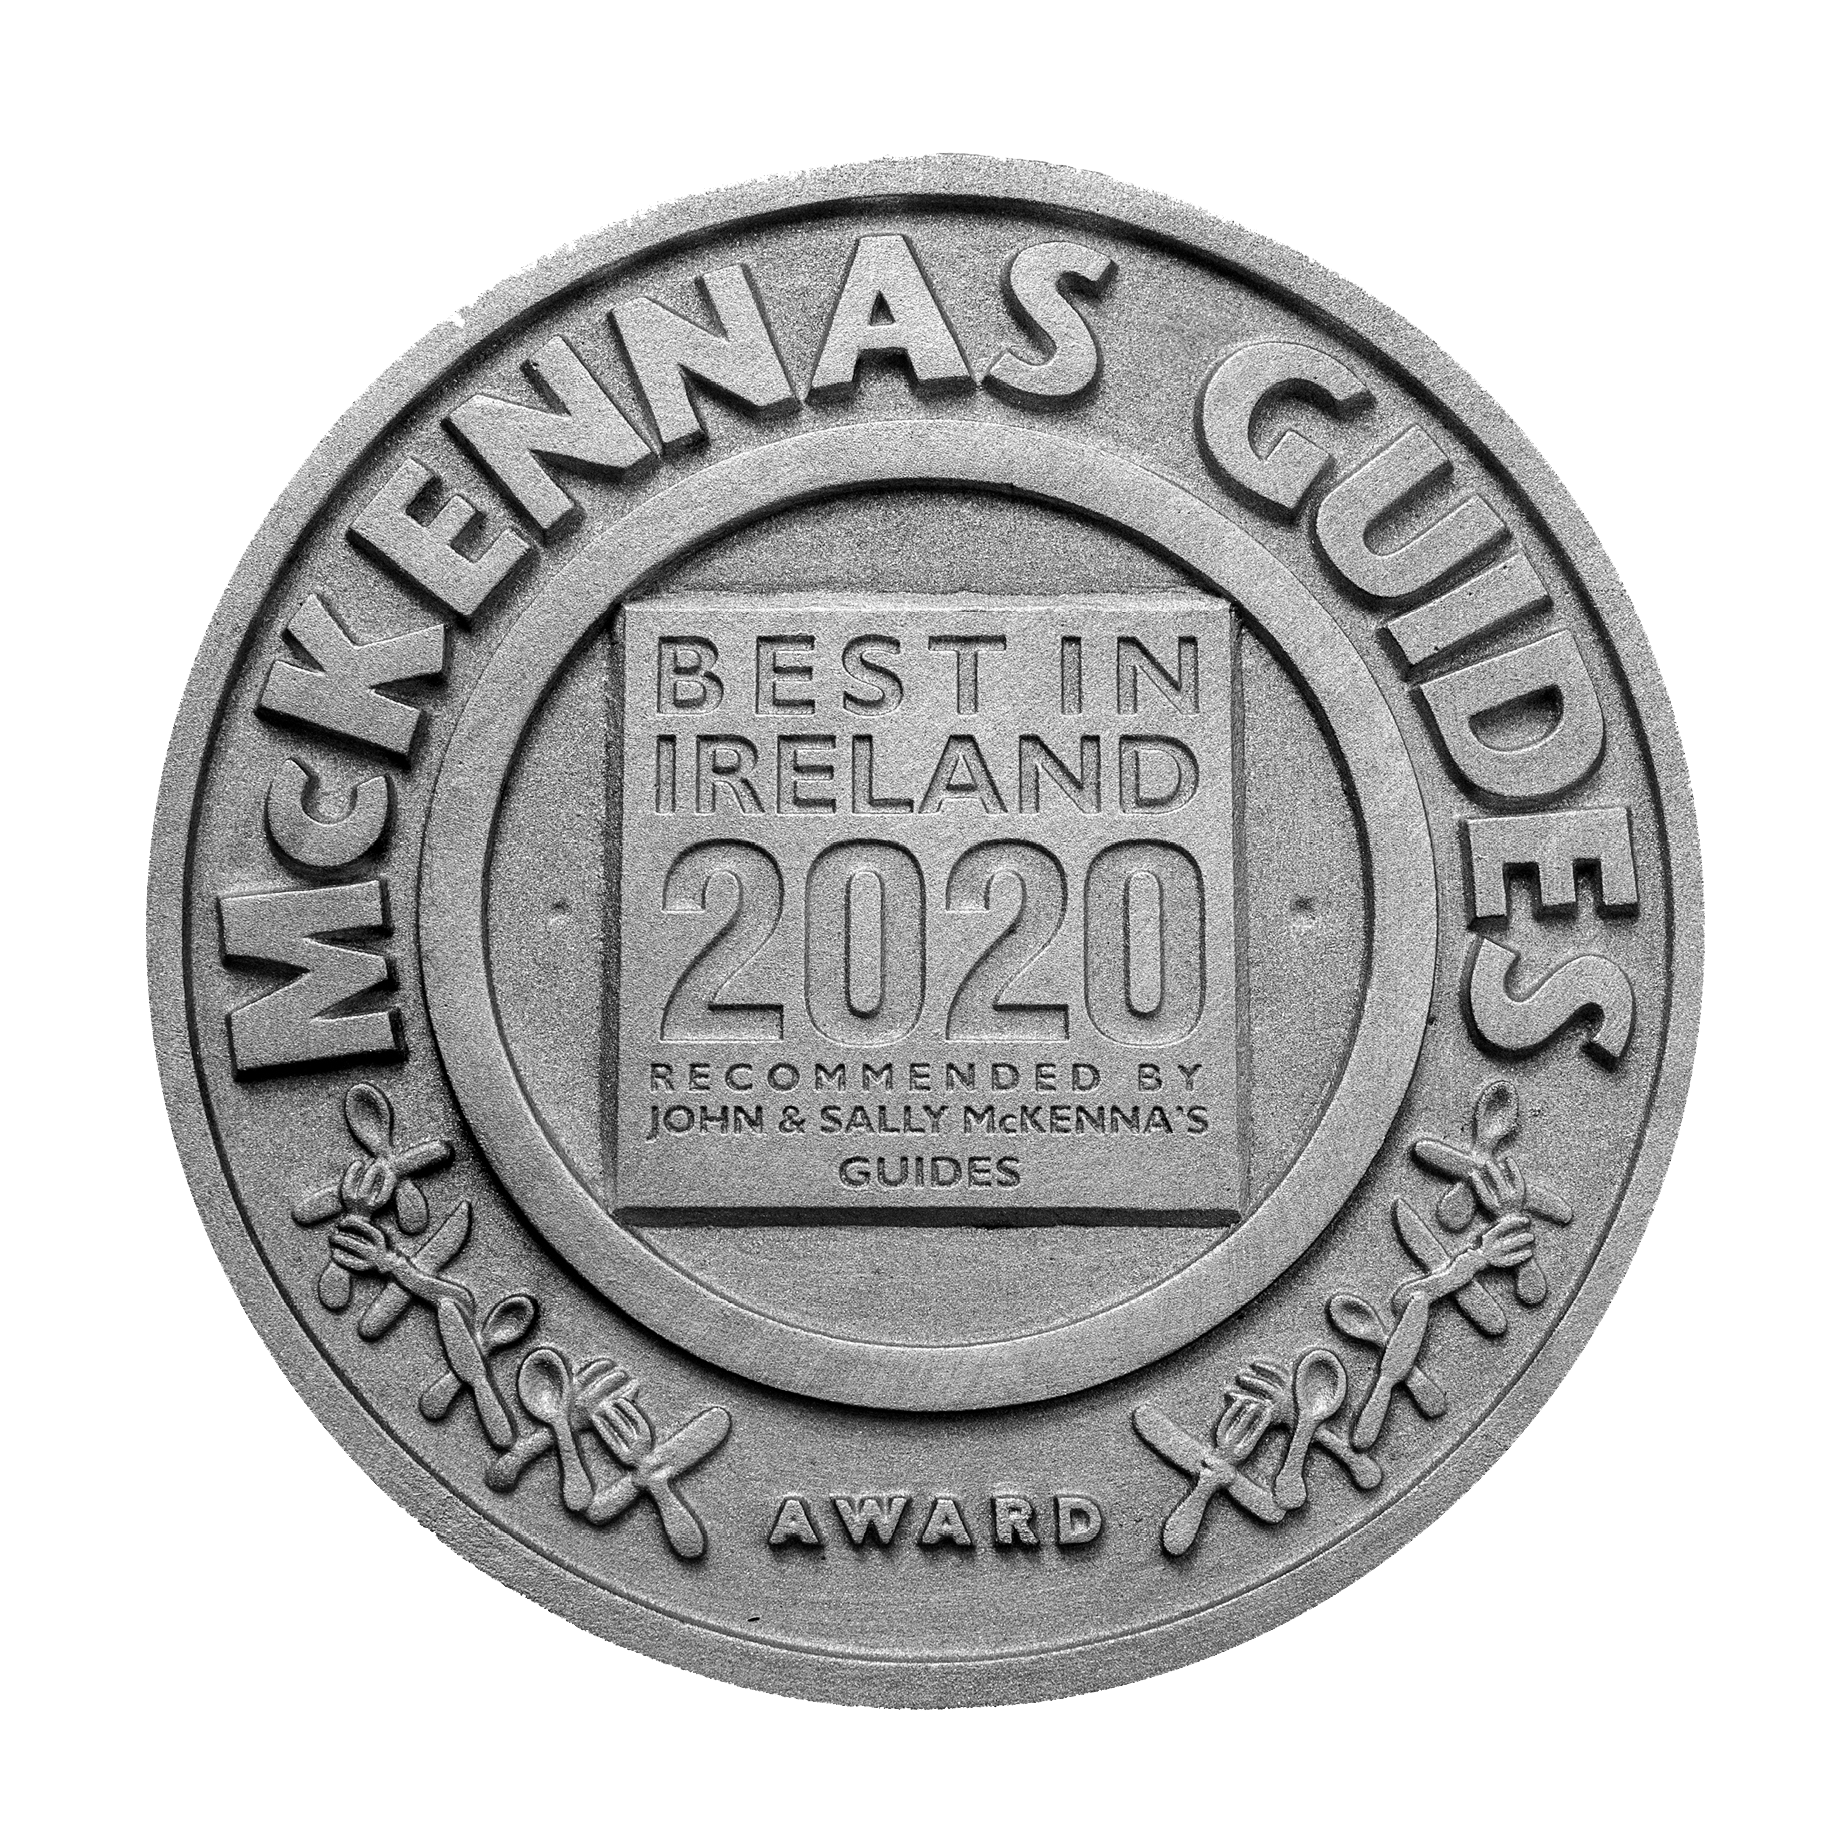 McKennas Guide plaque